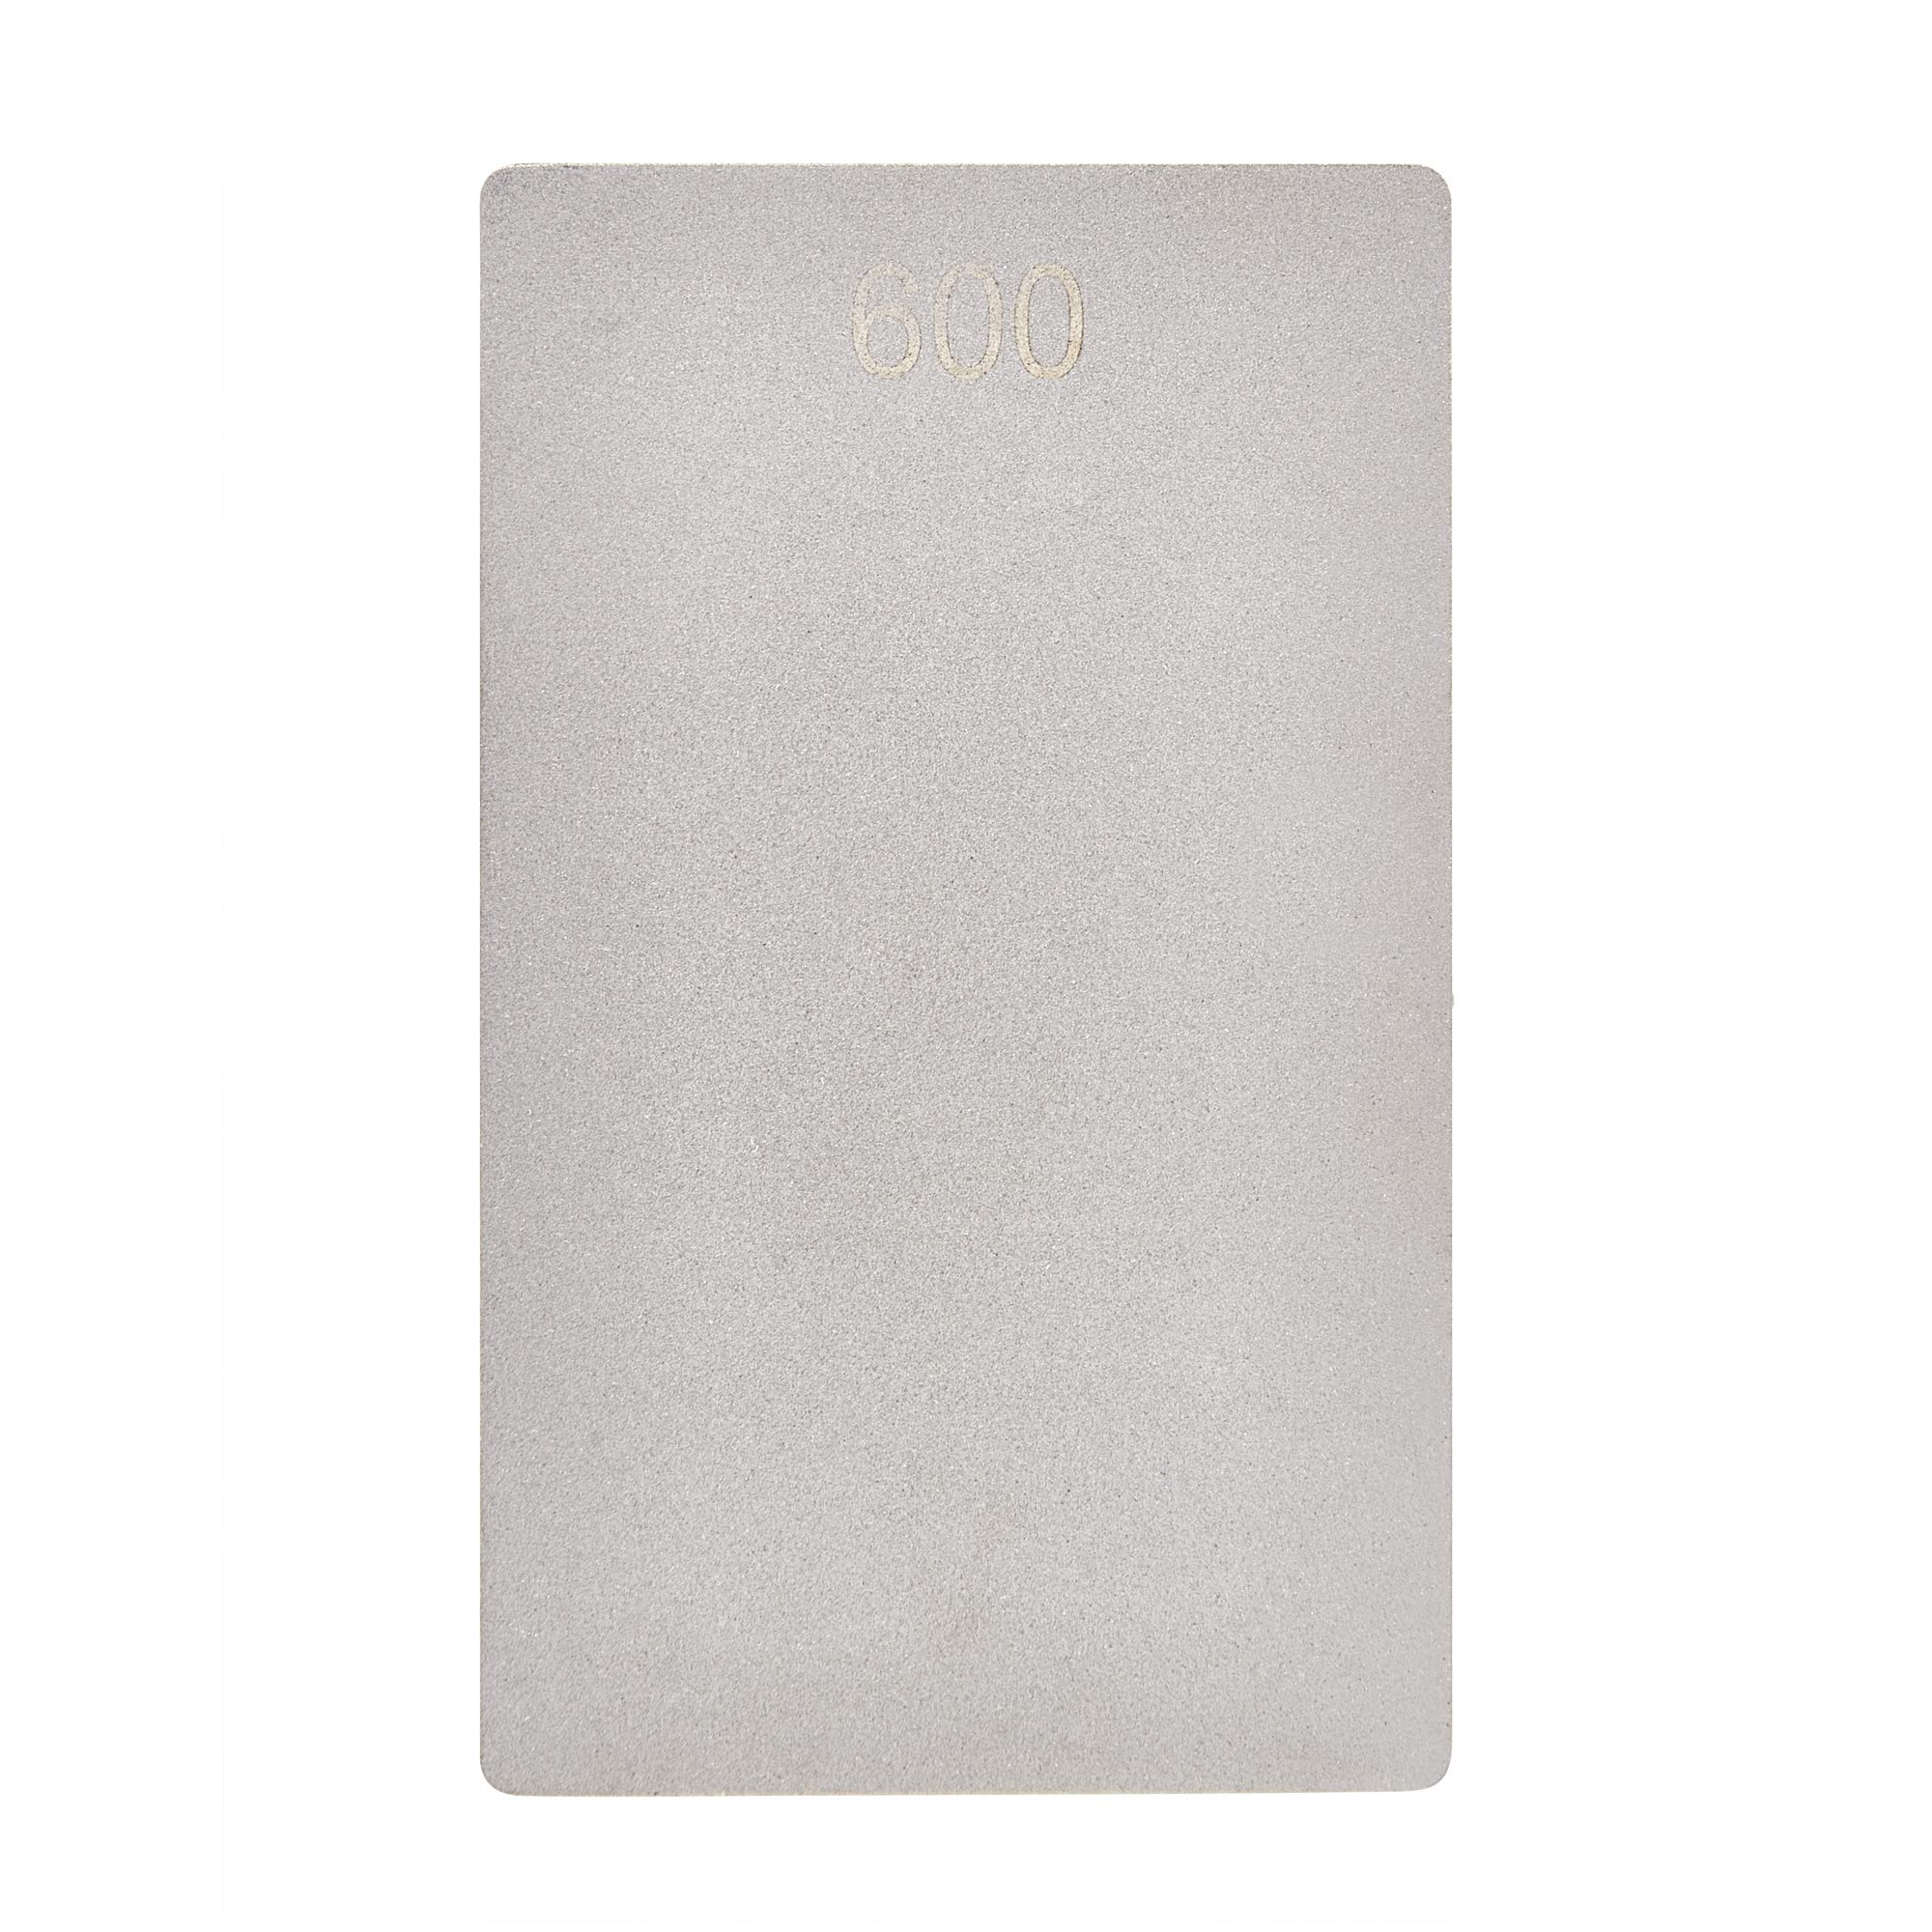 Trend DWS/CC/FC Fine/Coarse 3-Inch Double-sided Diamond Credit Card Stone